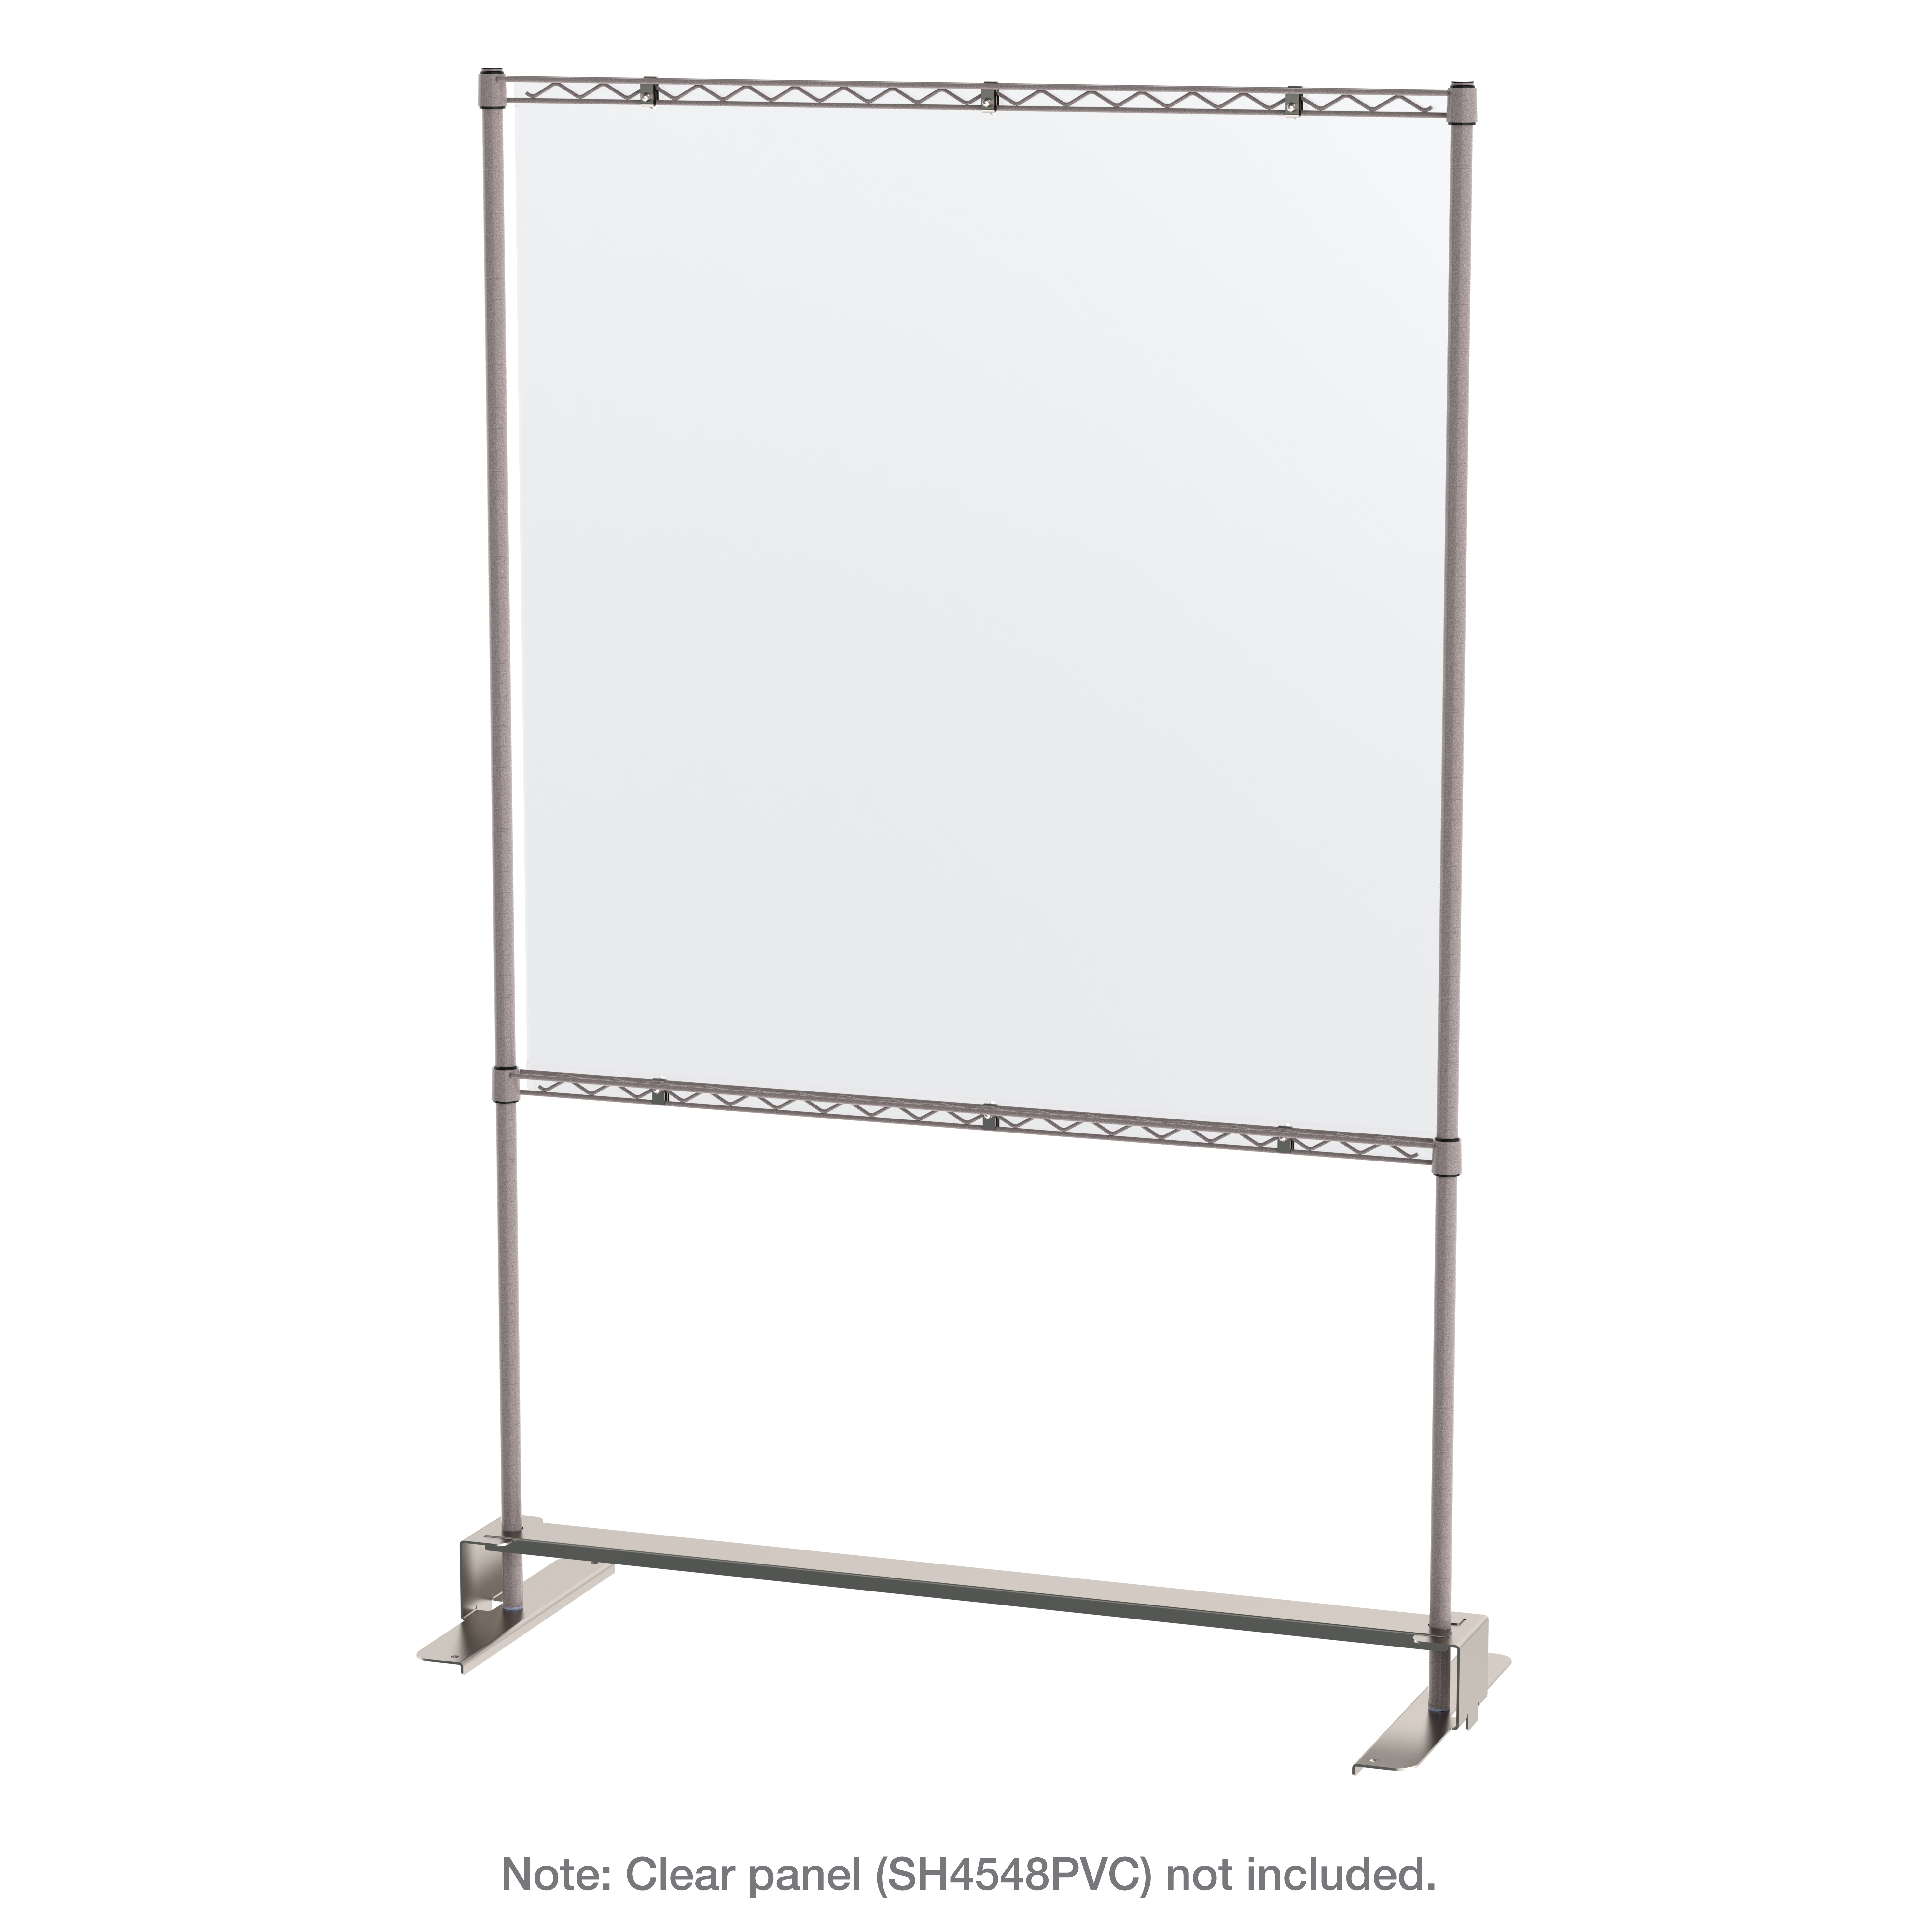 Metro SHC184880K4-MUB-4 Mobile Protective Barrier Shield Stand with 3 Wire Shelves, Metroseal Gray